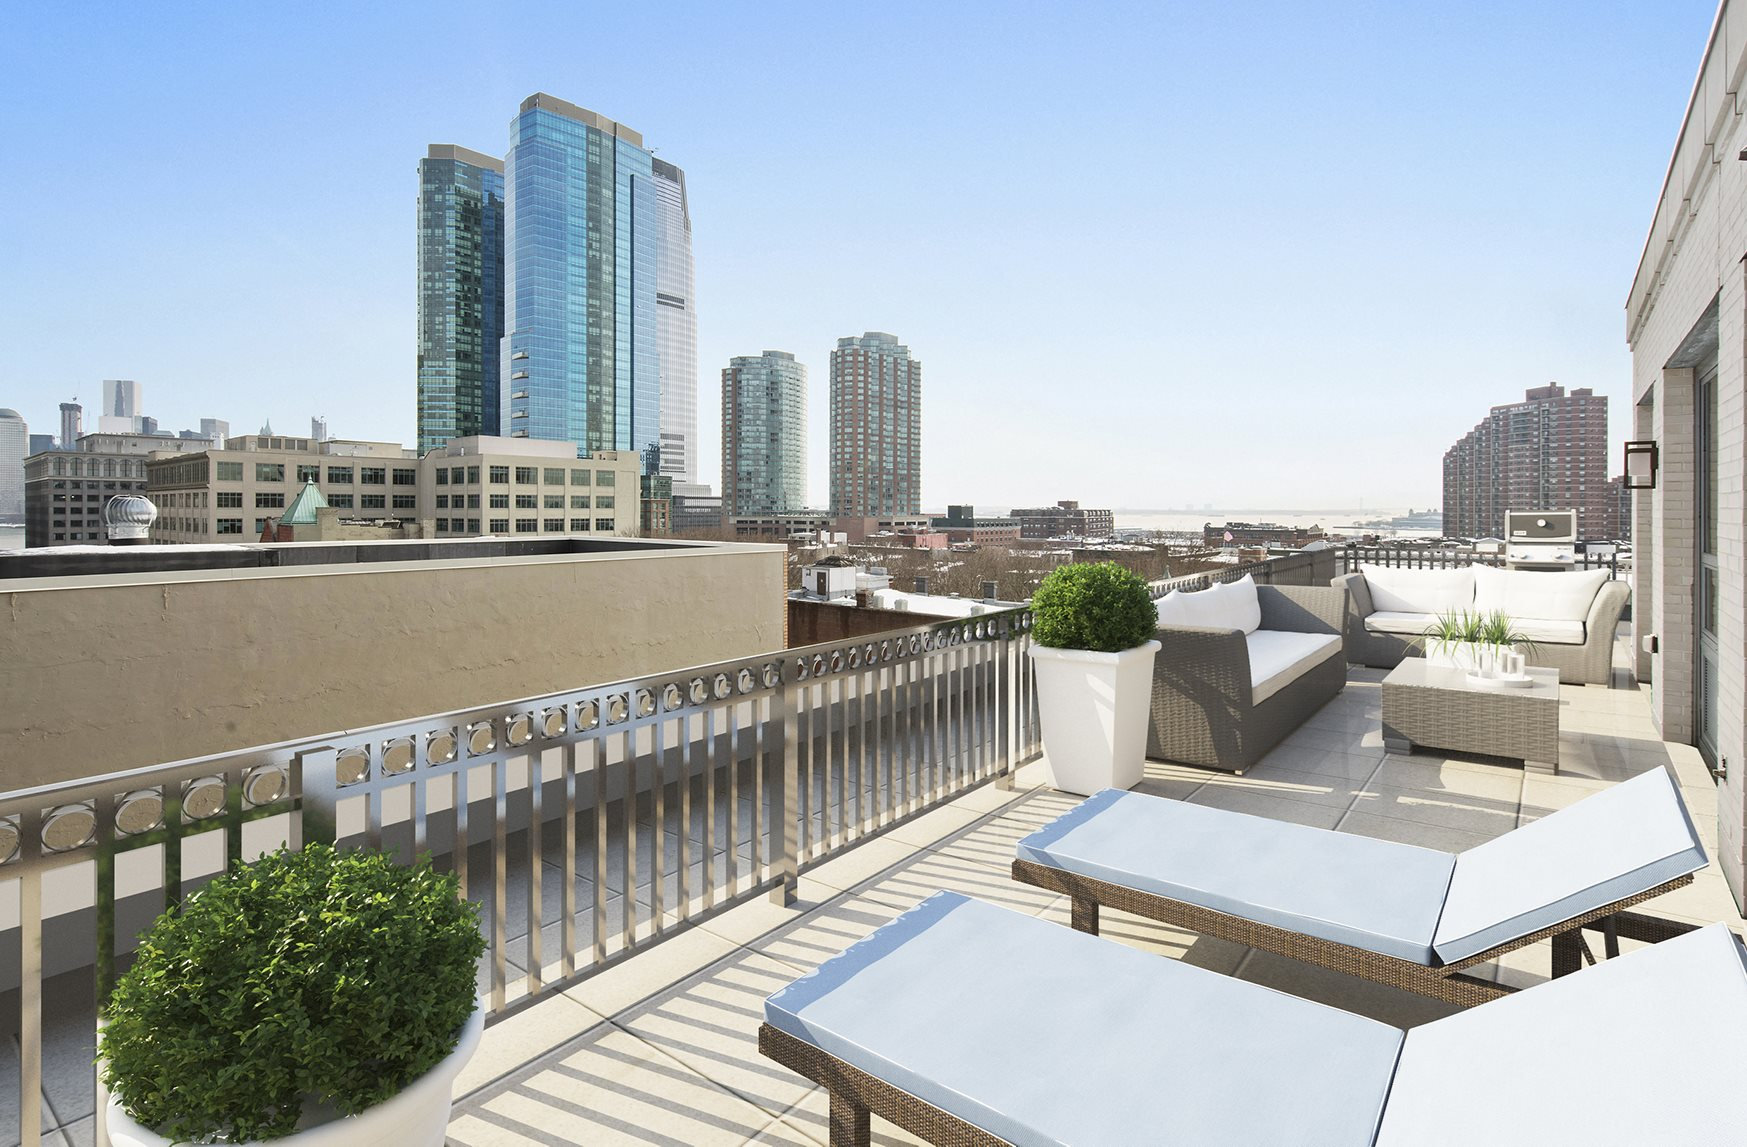 Rooftop Sundeck at Warren at York by Windsor, 120 York St., Jersey City, NJ 7302